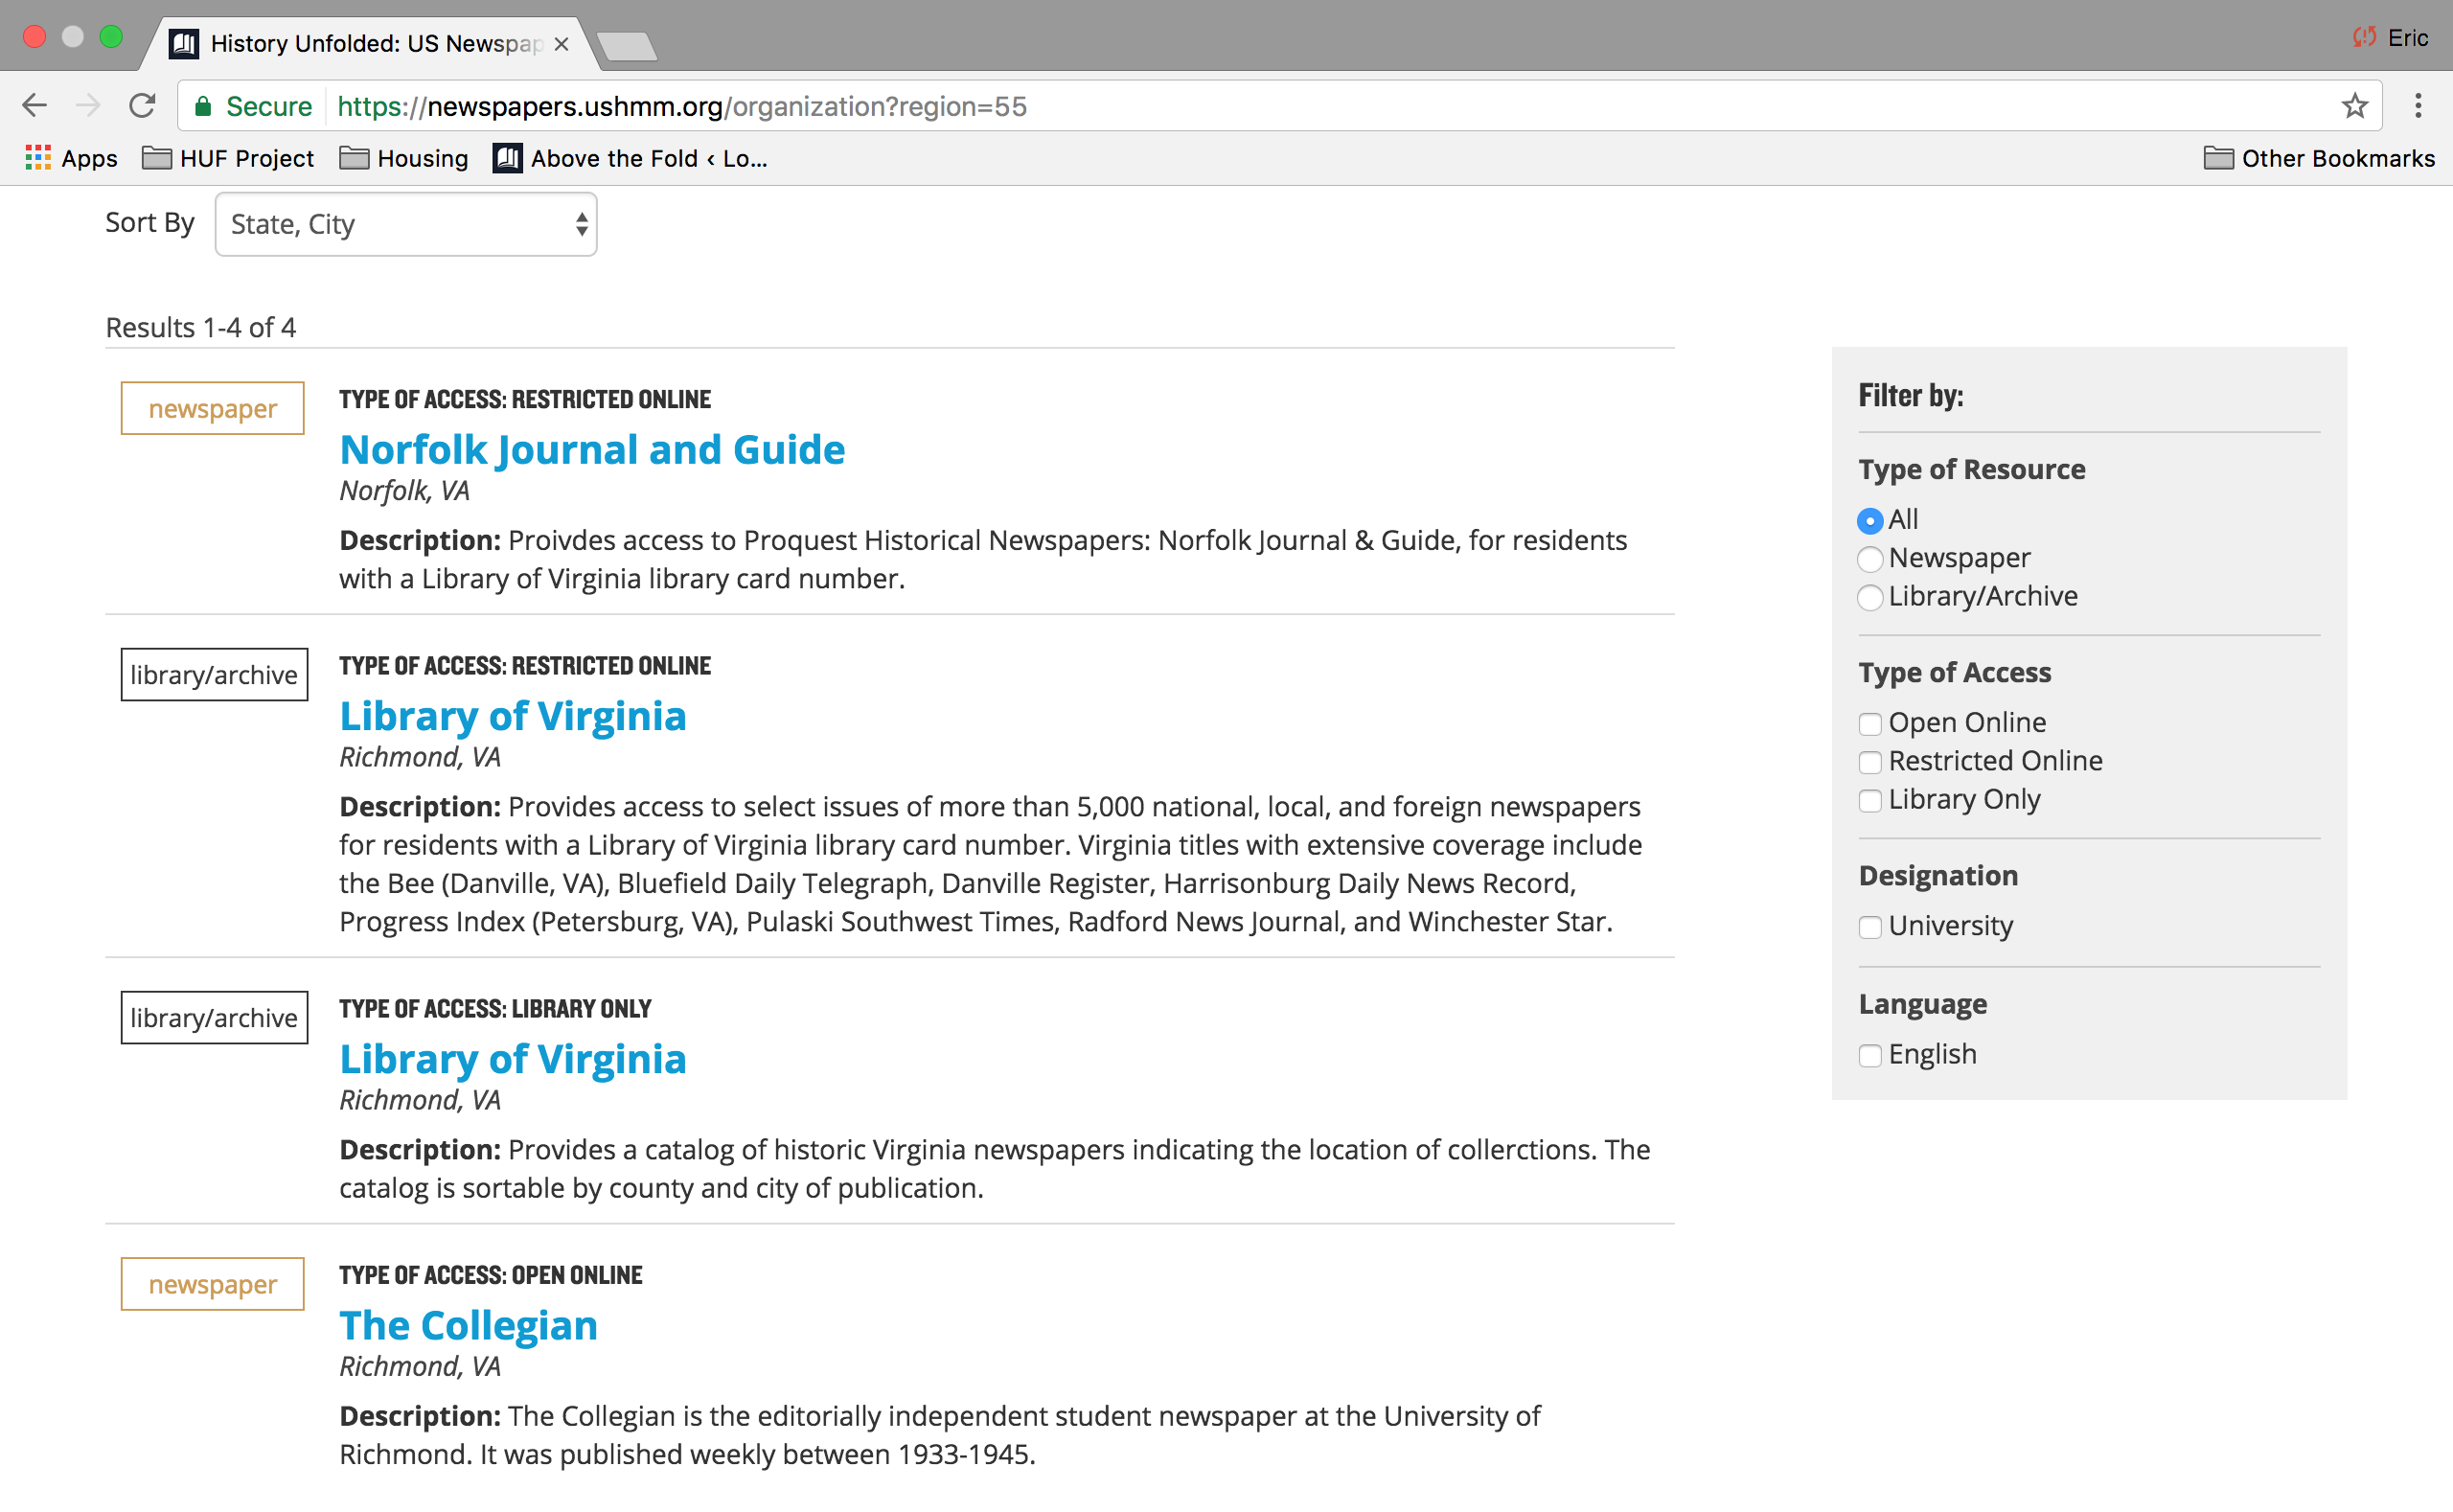 How Do I Make Sure I'm Adding New Research? | Above the Fold